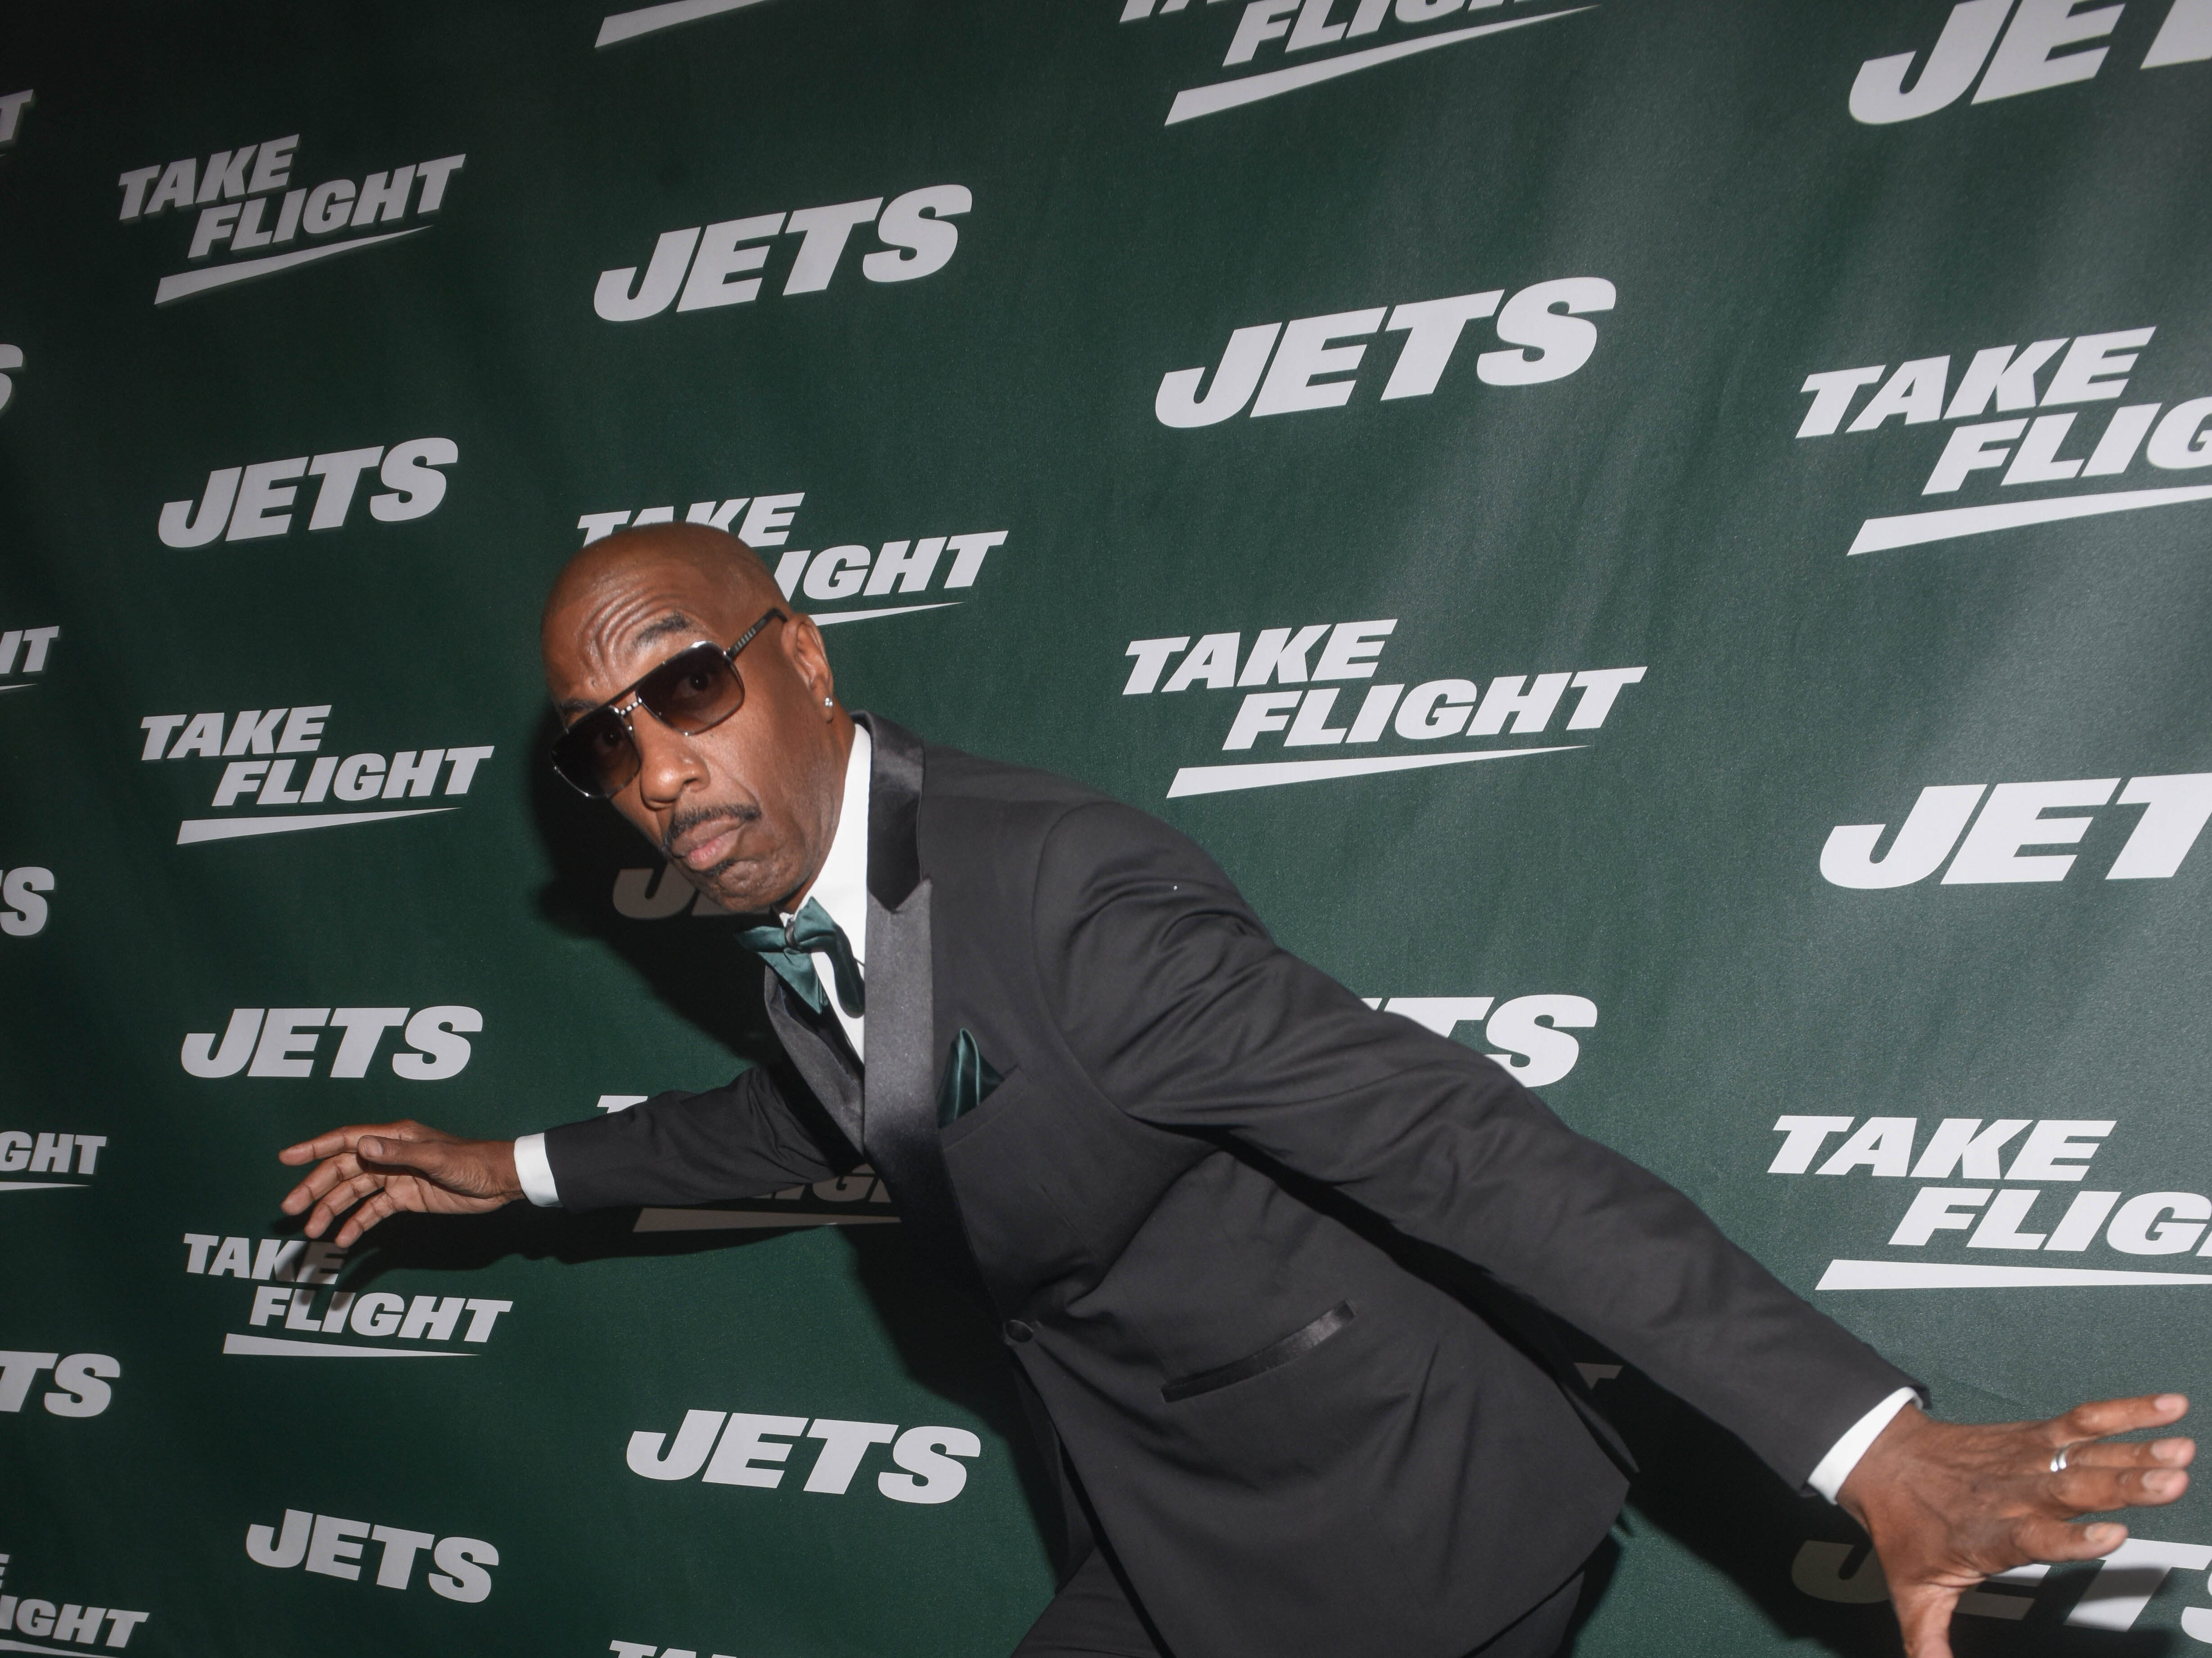 J. B. Smoove (Comedian/Event Host). The NY Jets unveiled their new football uniforms with an event hosted by JB Smoove at Gotham Hall in New York. 04/05/2019